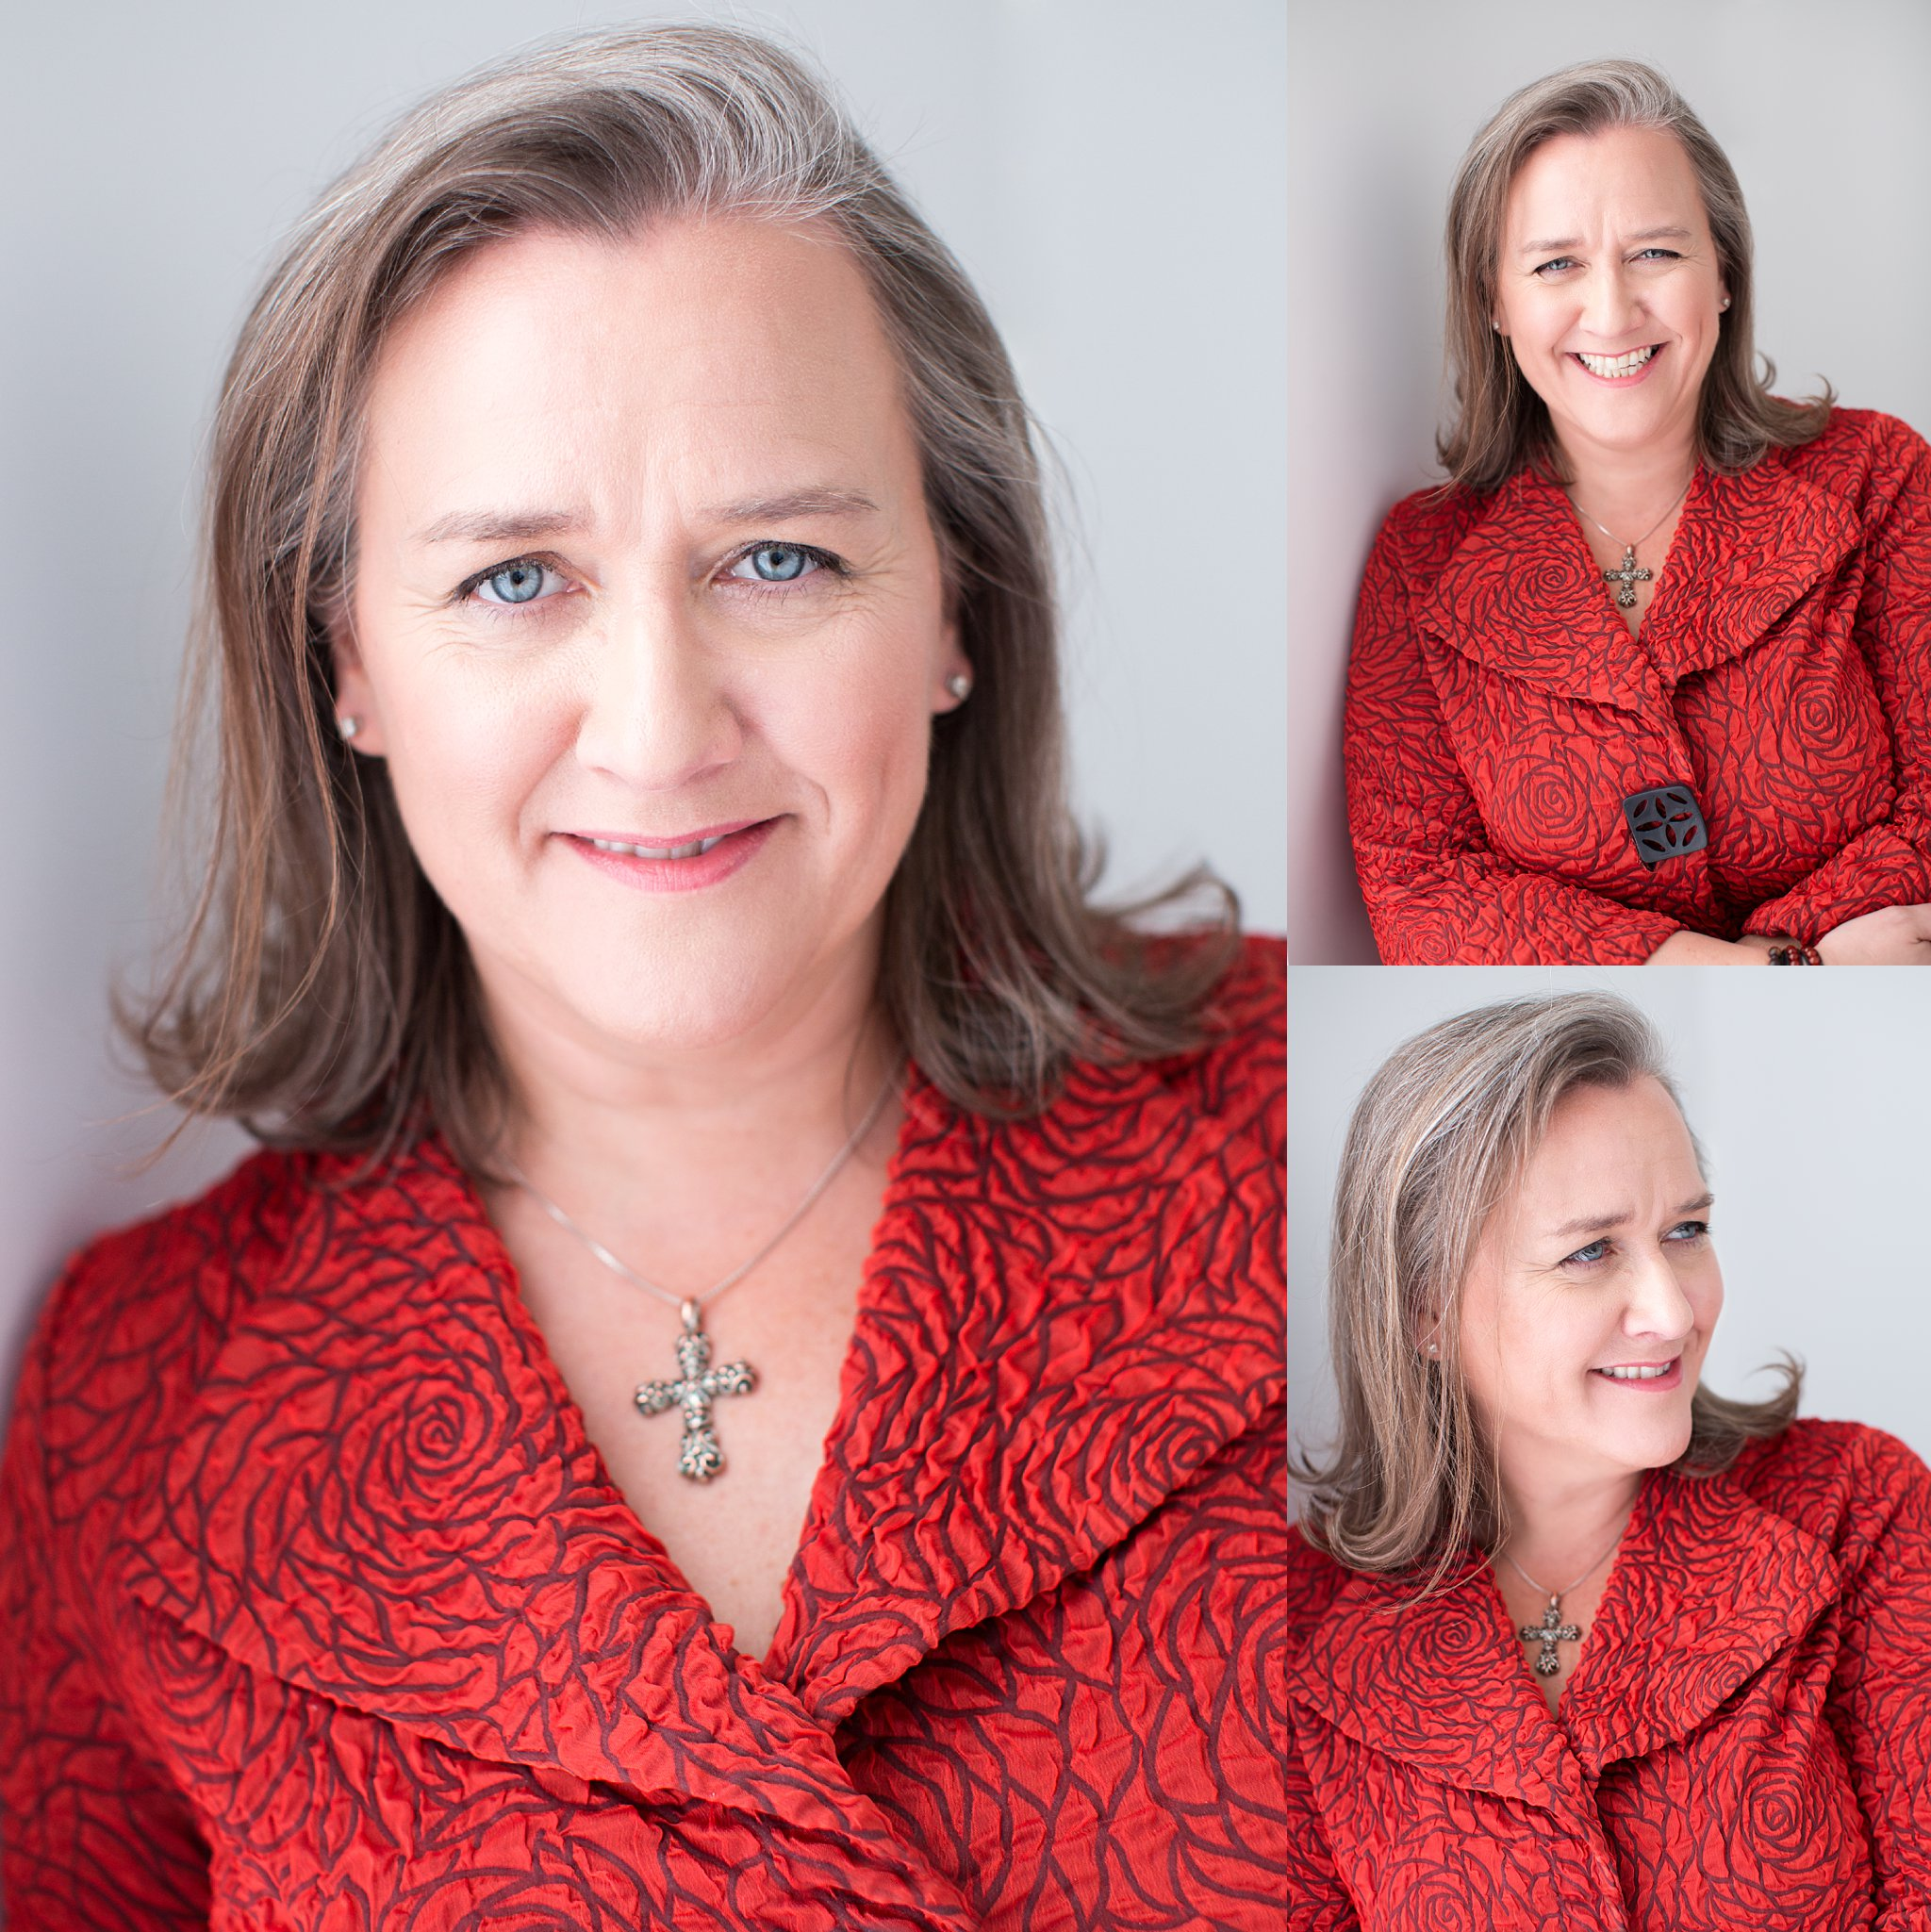 Portraits of Woman in Red Jacket_0007.jpg